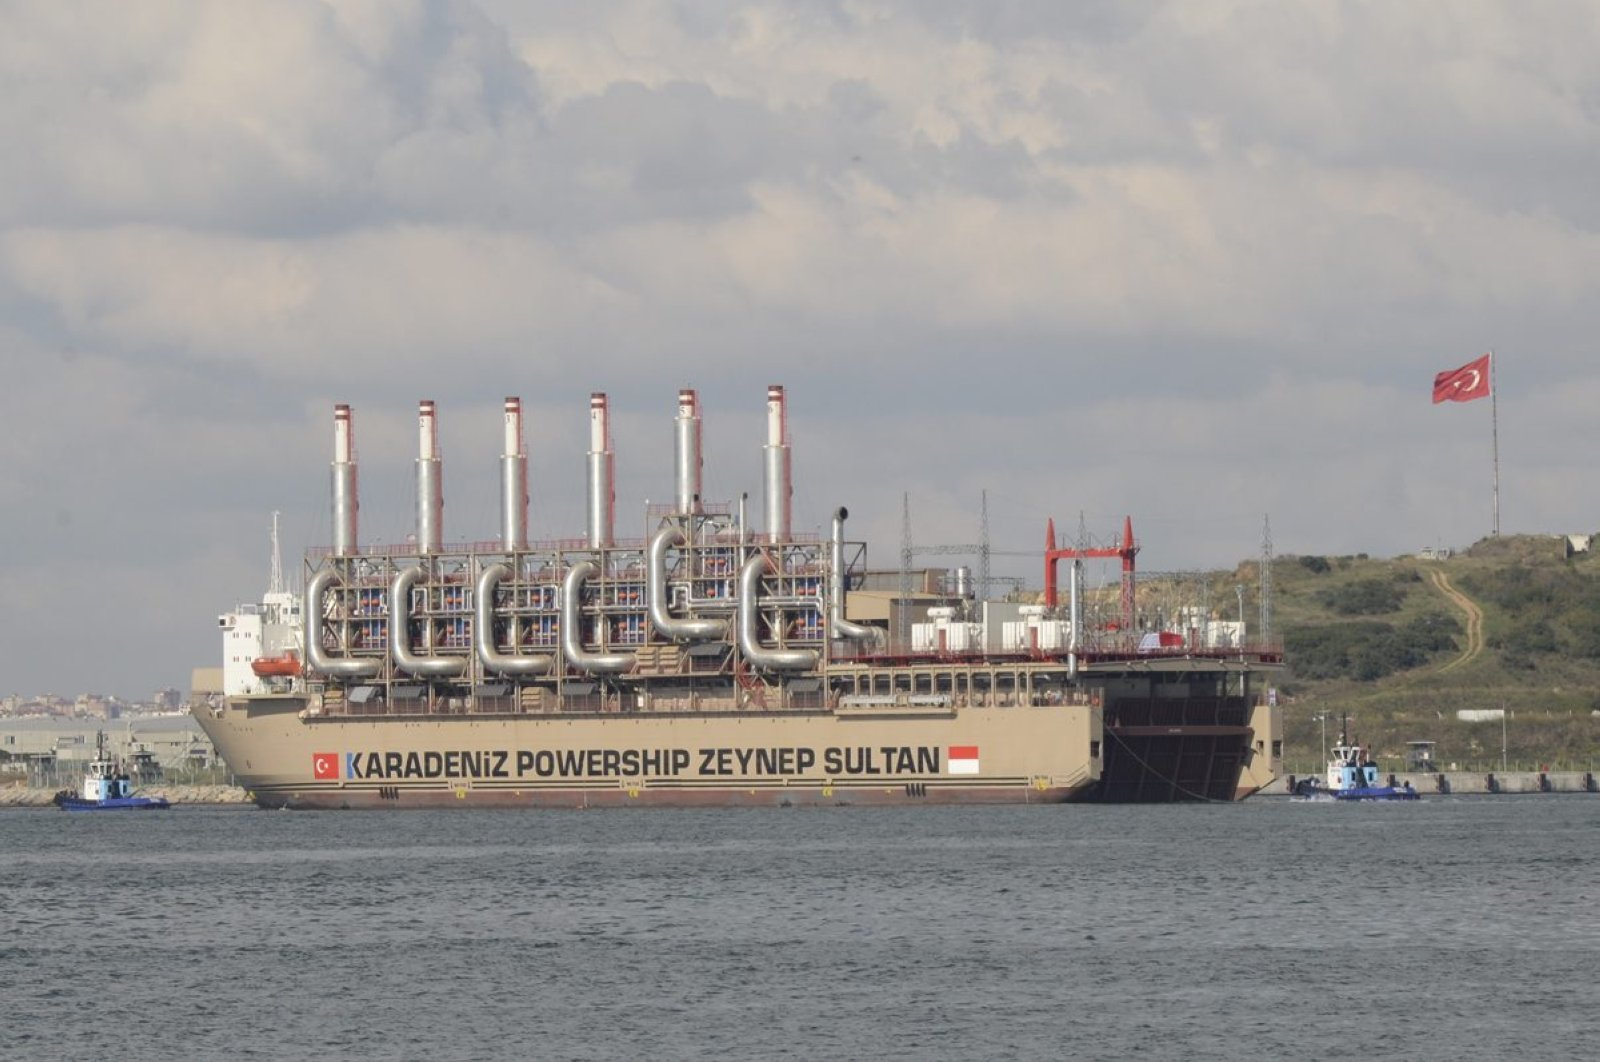 Karadeniz Holding's powership, Zeynep Sultan, seen in Tuzla, Istanbul, before sailing to Indonesia to meet the country's energy needs, Oct. 31, 2015.